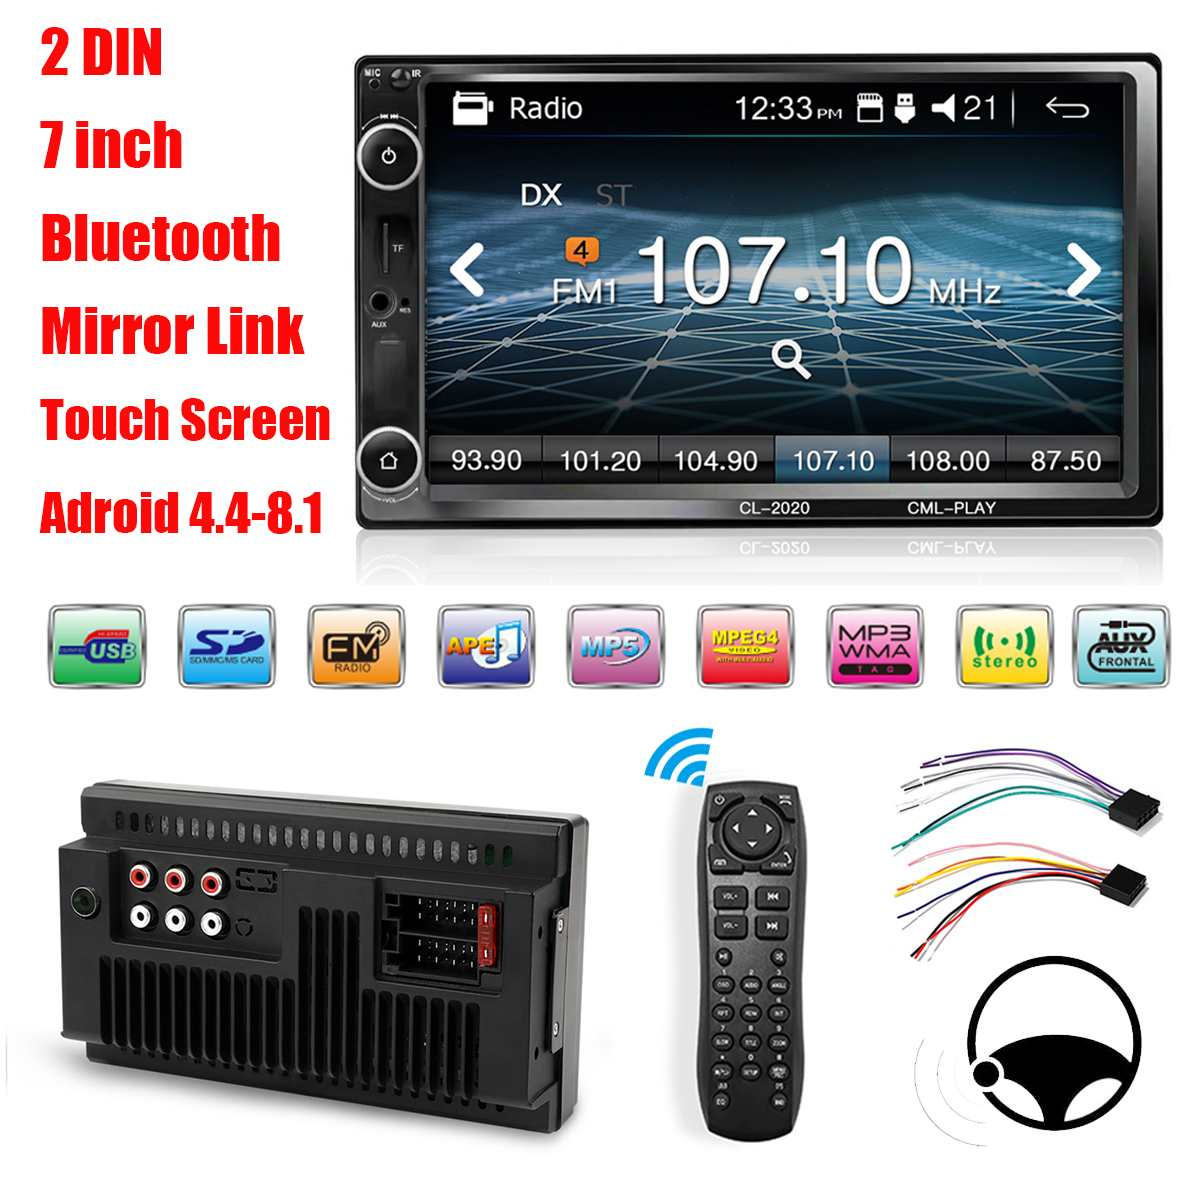 7 Double Car Radio Stereo MP5 Player 2 Din bluetooth FM AUX USB Audio Touchable Hands Free Remote Control Car Multimedia Player7 Double Car Radio Stereo MP5 Player 2 Din bluetooth FM AUX USB Audio Touchable Hands Free Remote Control Car Multimedia Player